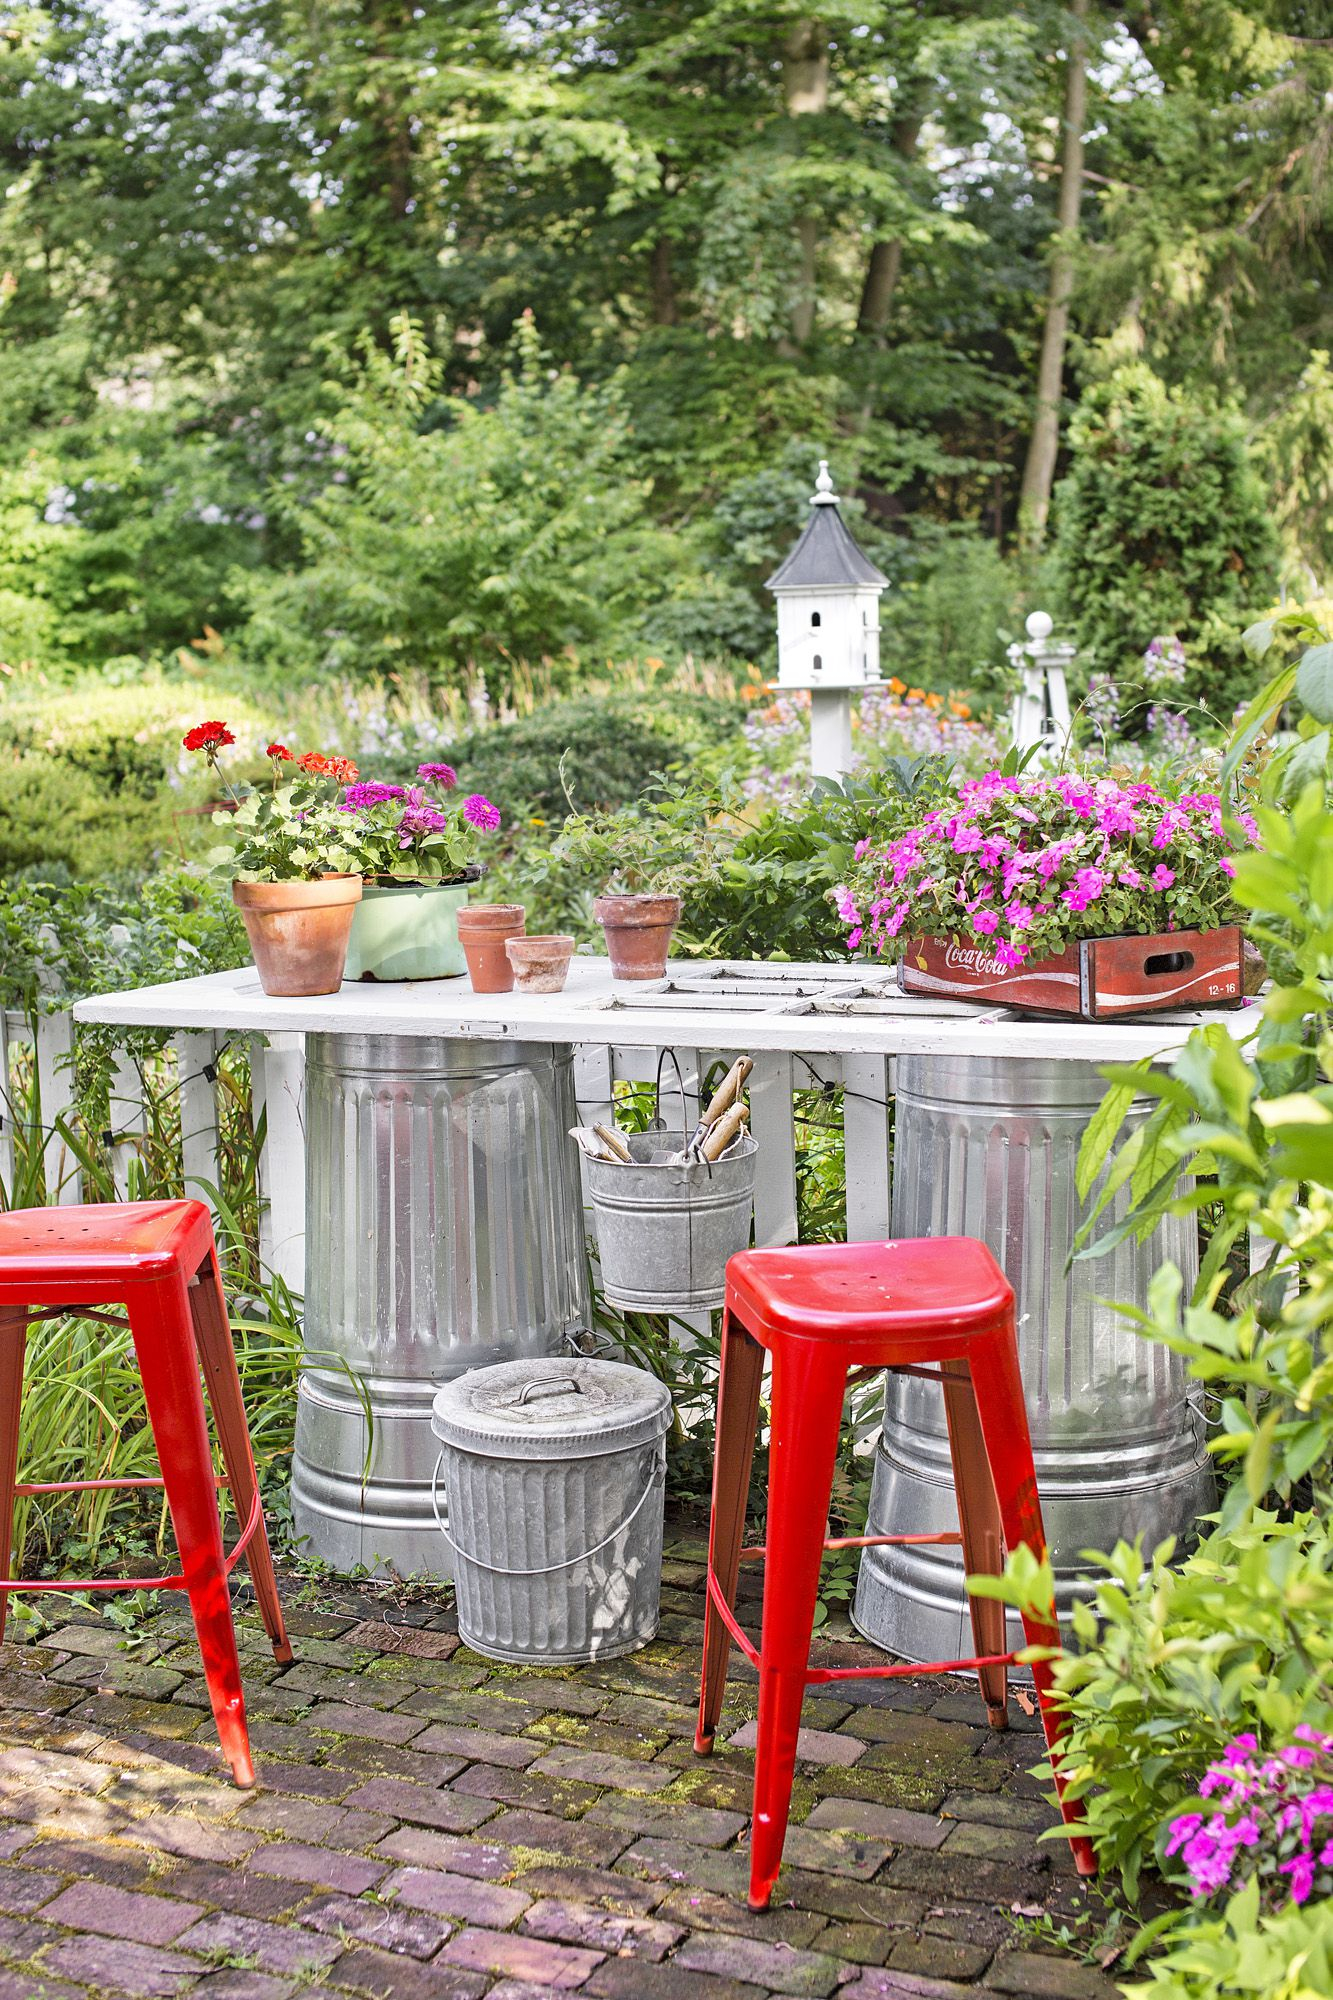 82 Diy Backyard Design Ideas Diy Backyard Decor Tips inside Backyard Decor Ideas On A Budget